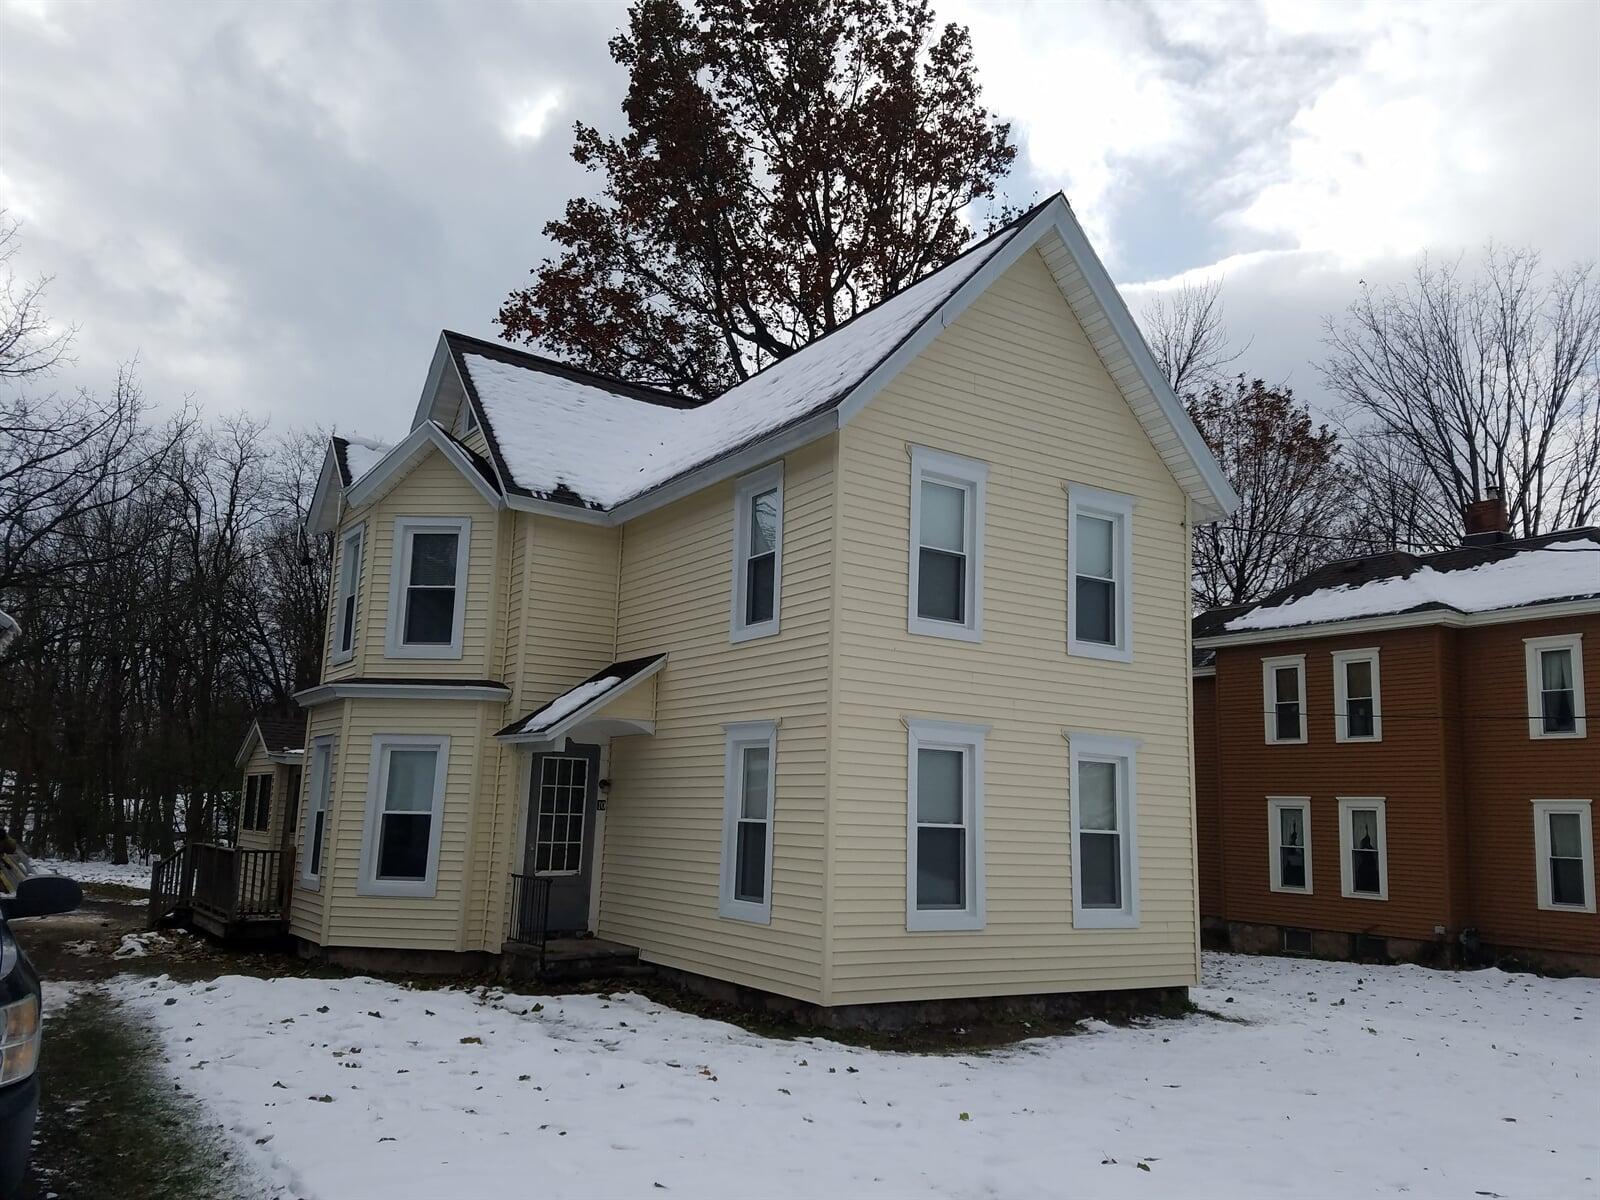 Exterior of Home in Winter Featuring New Windows in House